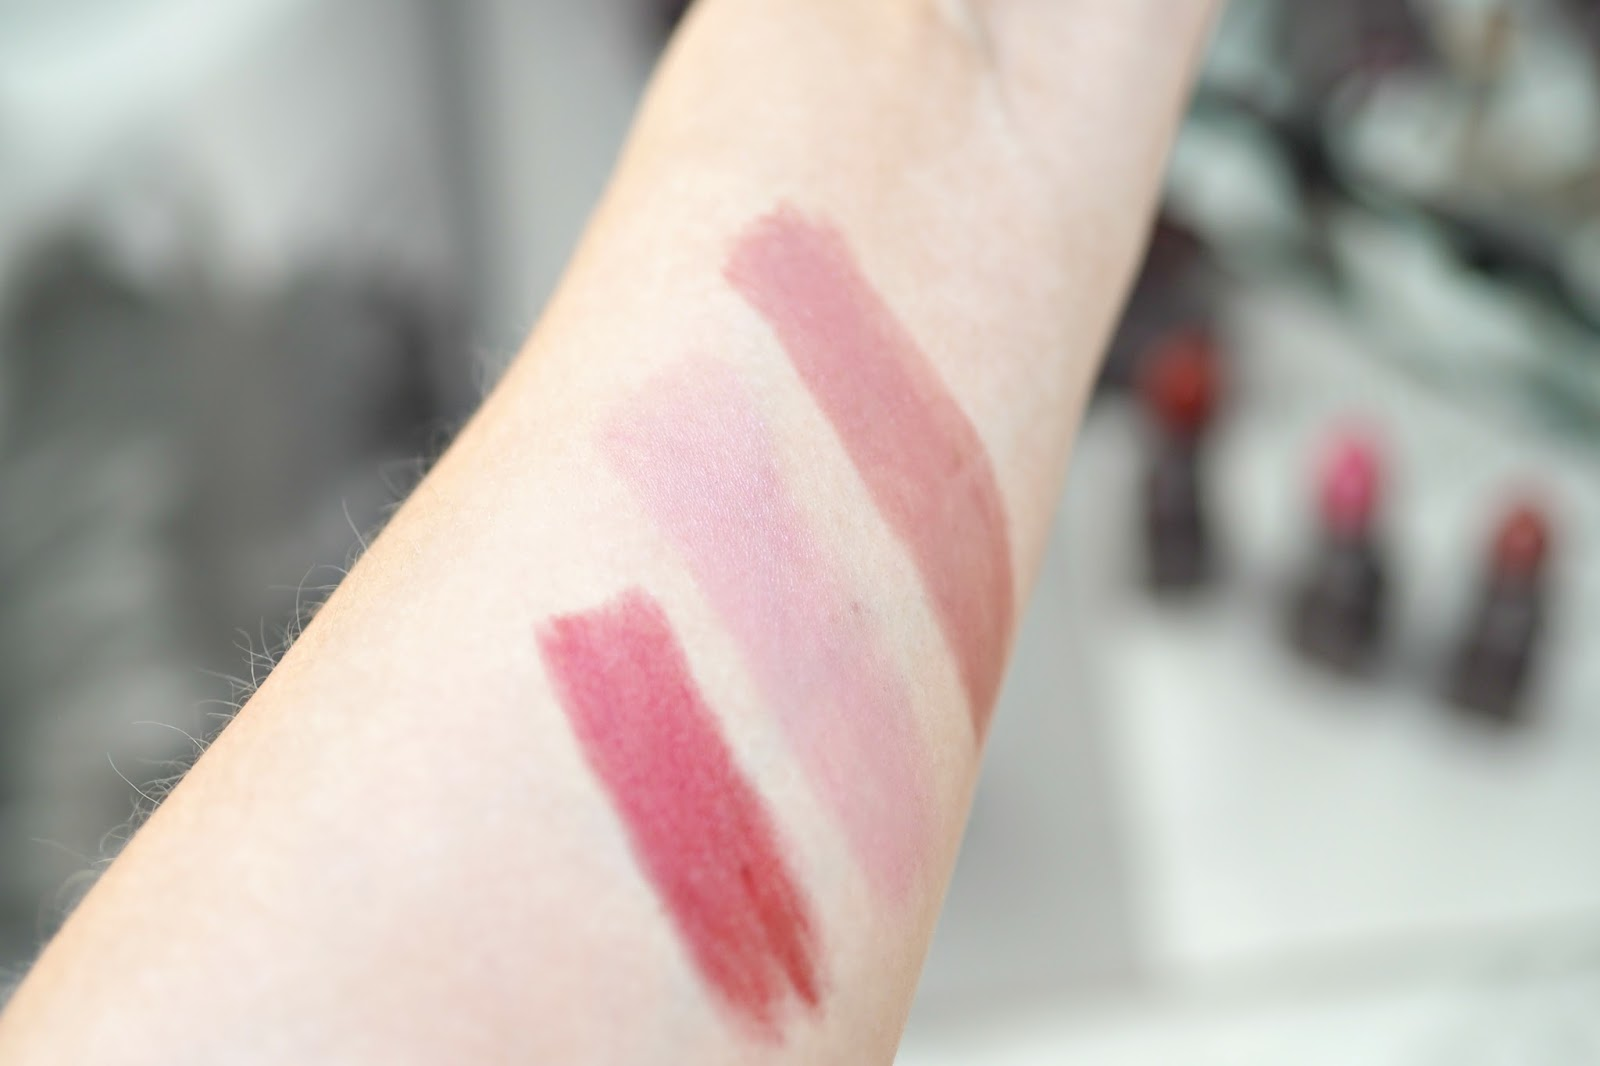 Burt's Bees Satin Lipsticks swatches